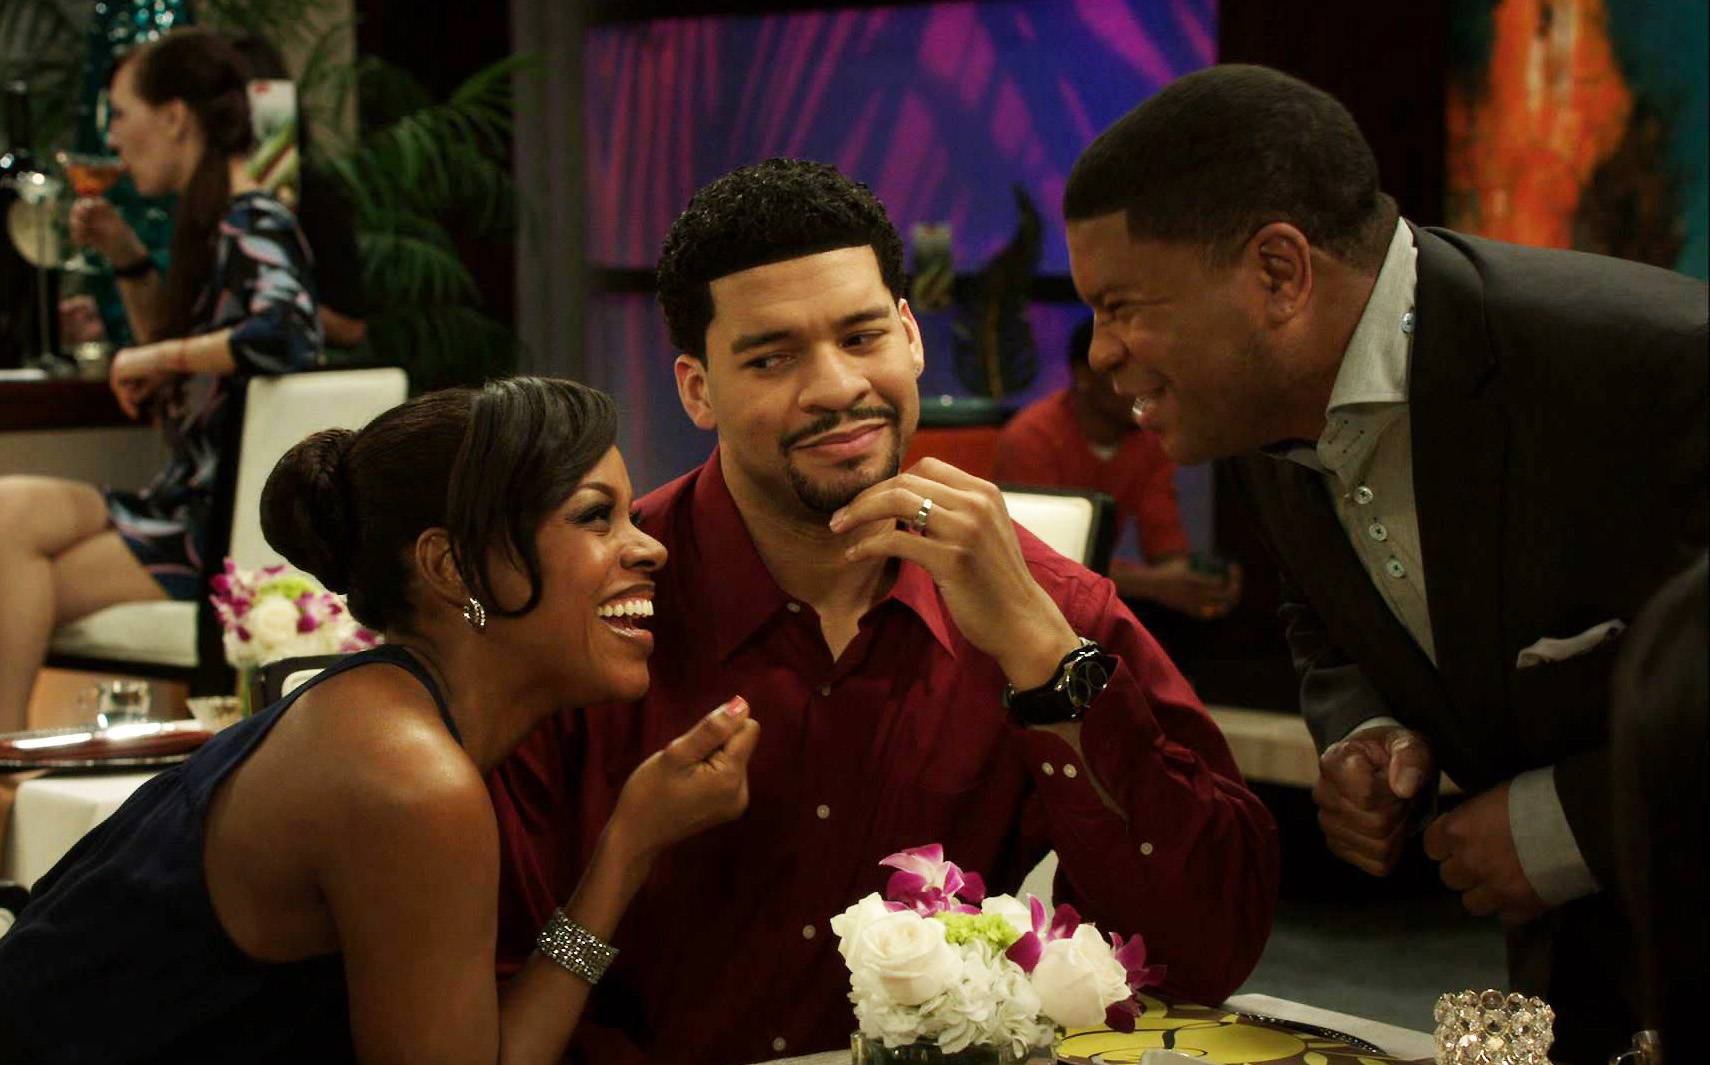 Big Break! - After suffering through a terrible film, Charles has the brilliant idea of sending Stacy on a date with another man!(Photo: BET)